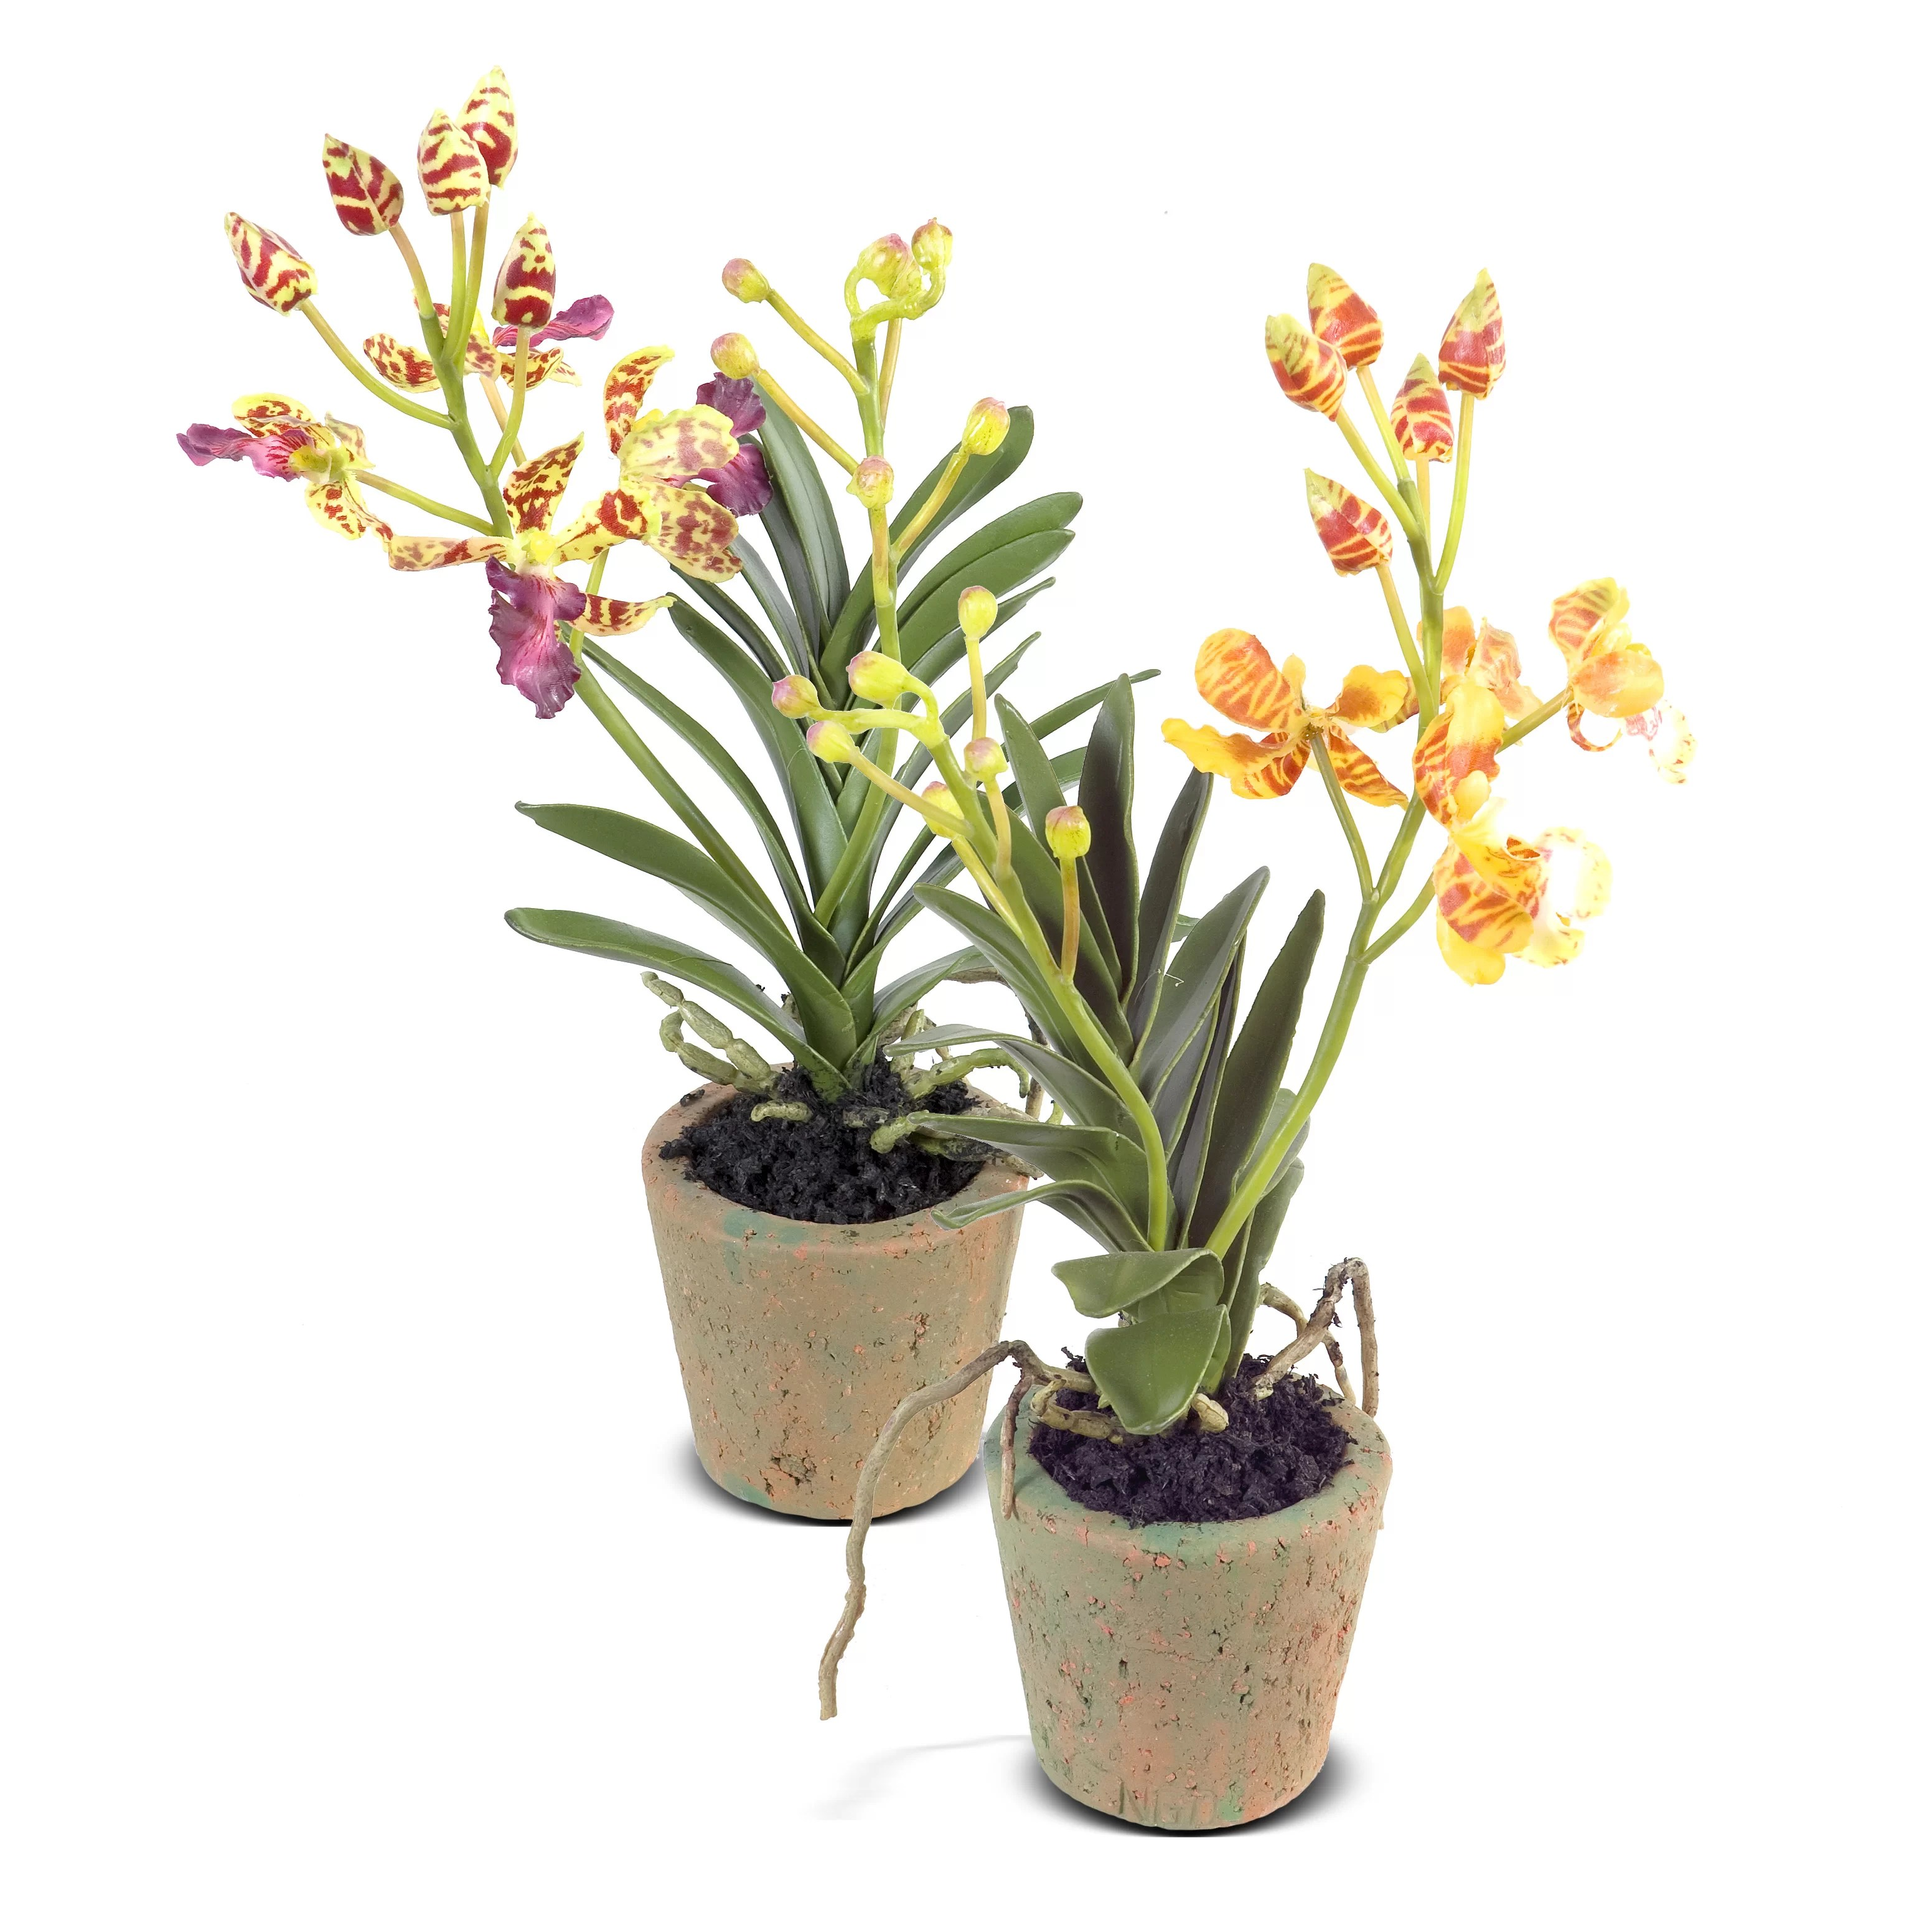 New Growth Designs Faux Vanda Orchid Flower In Pot Wayfair